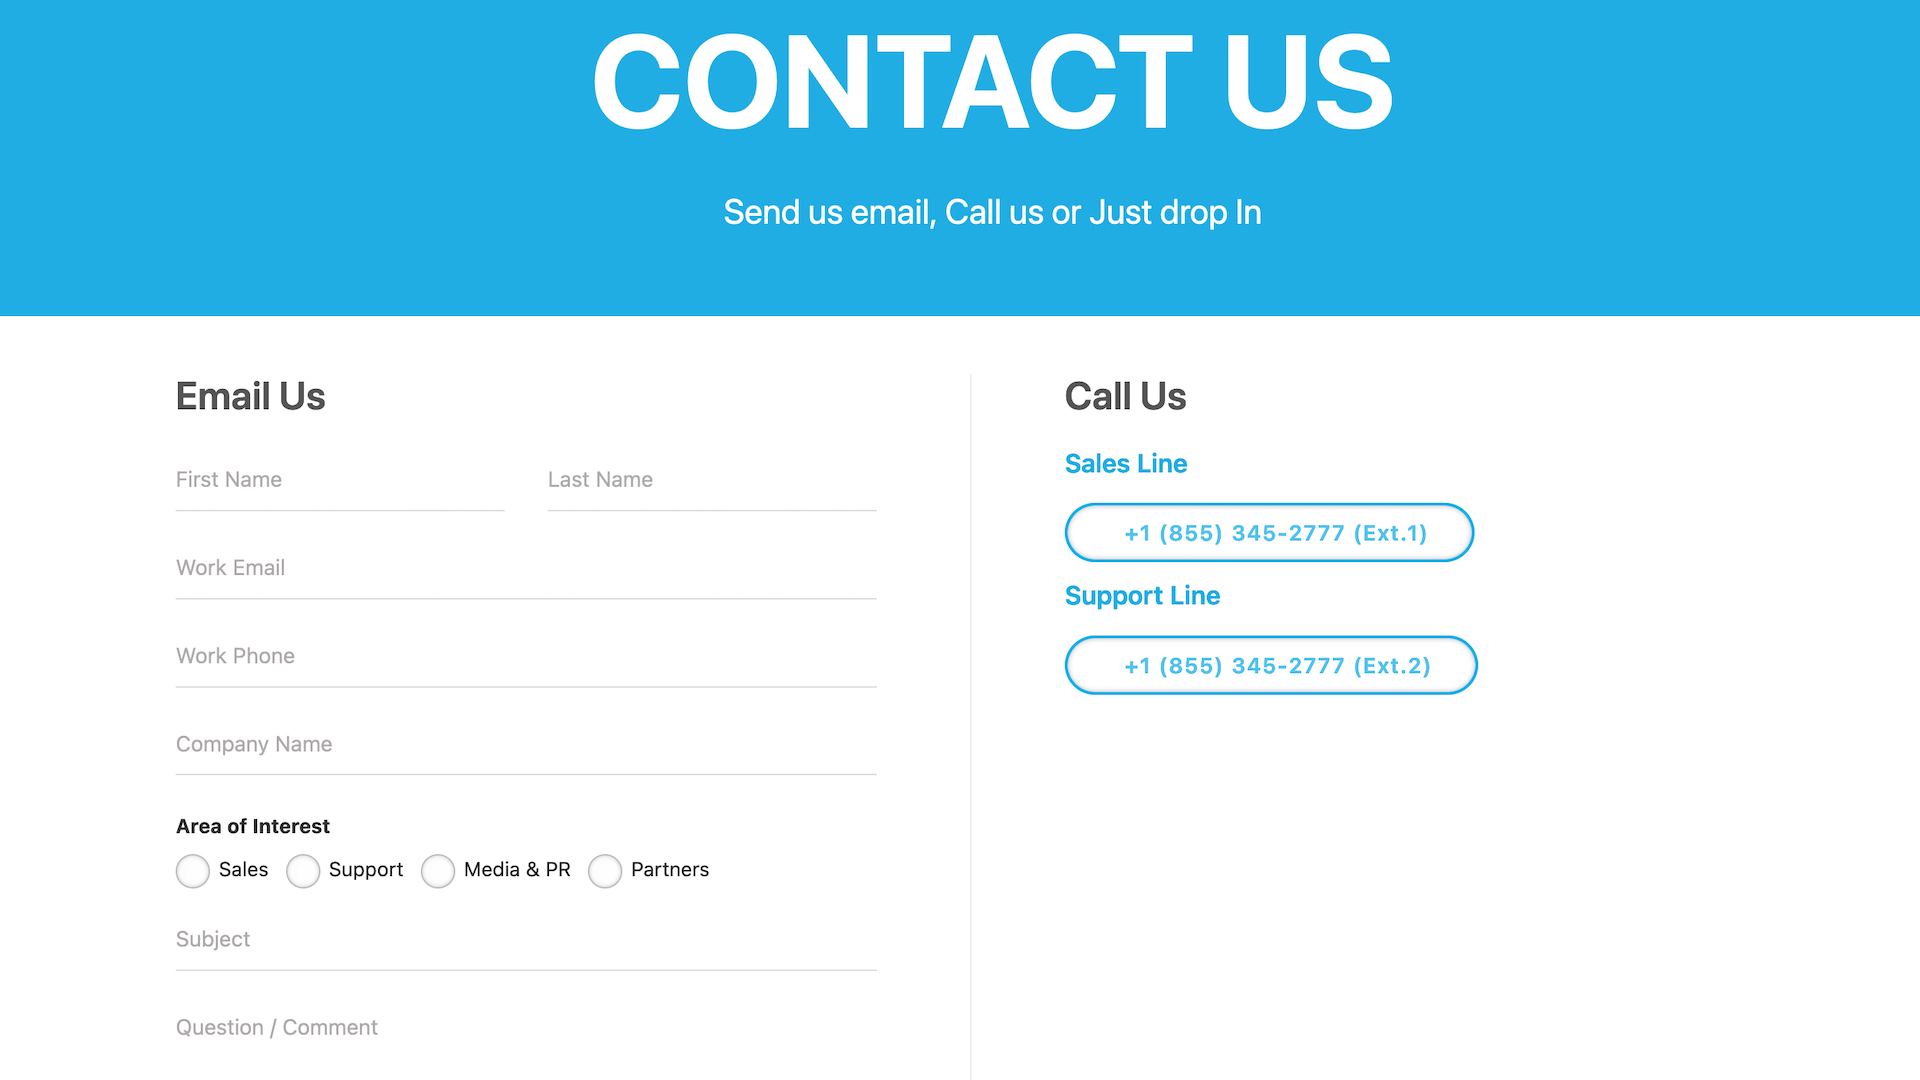 Apptivo's online customer service contact page